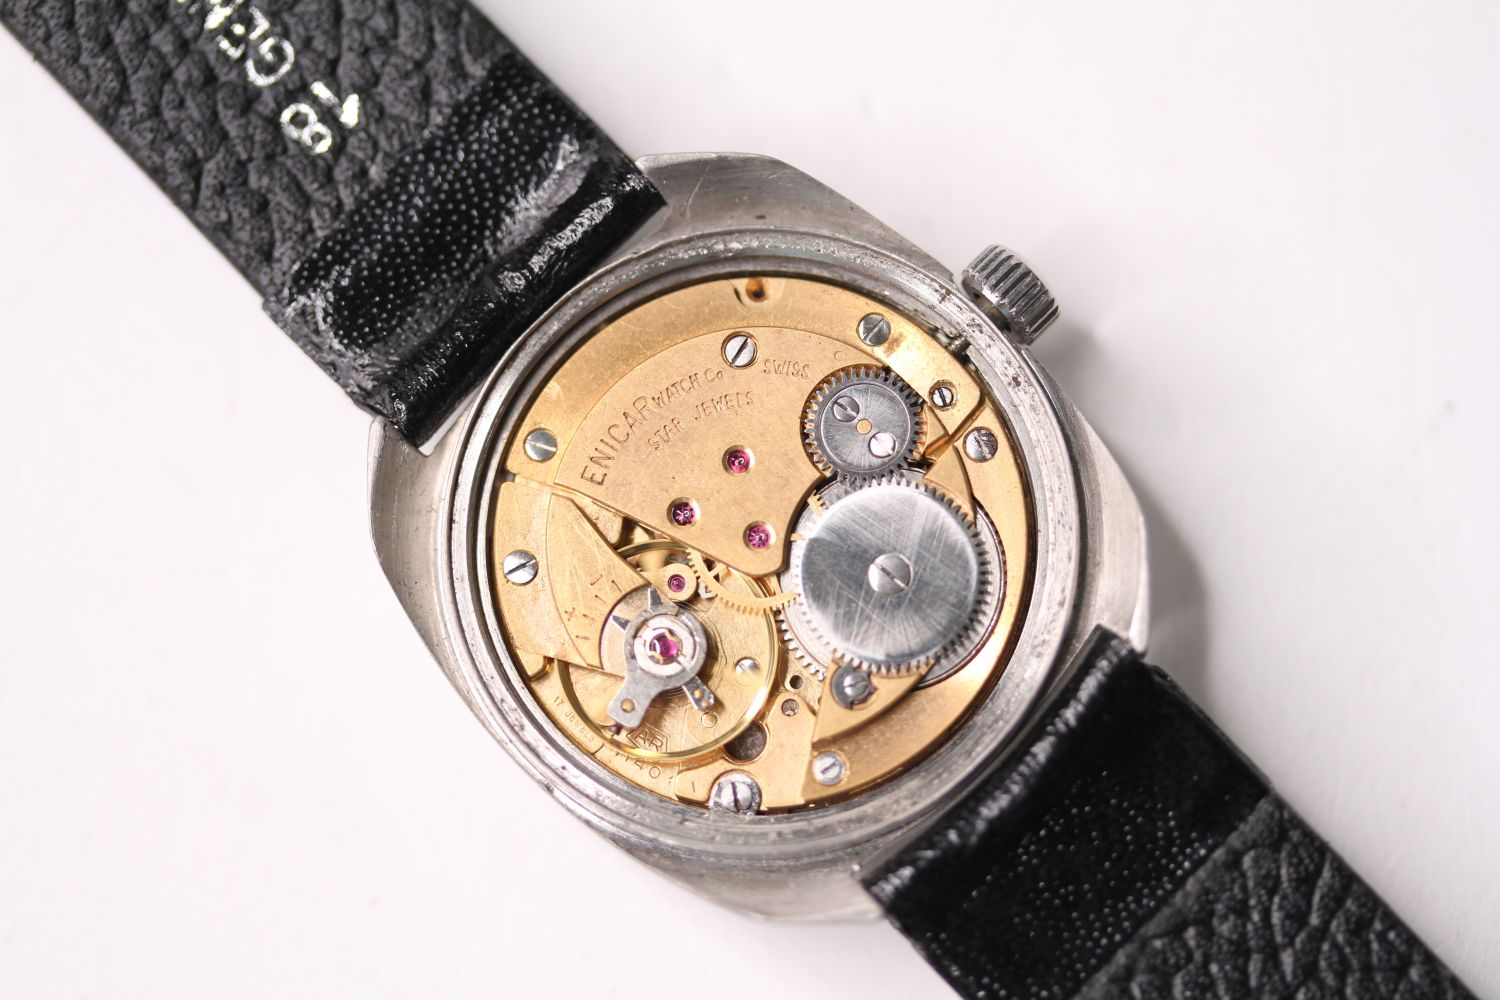 *TO BE SOLD WITHOUT RESERVE* ENICAR STAR JEWELS AUTOMATIC WRISTWATCH, circular cream dial with - Image 4 of 4